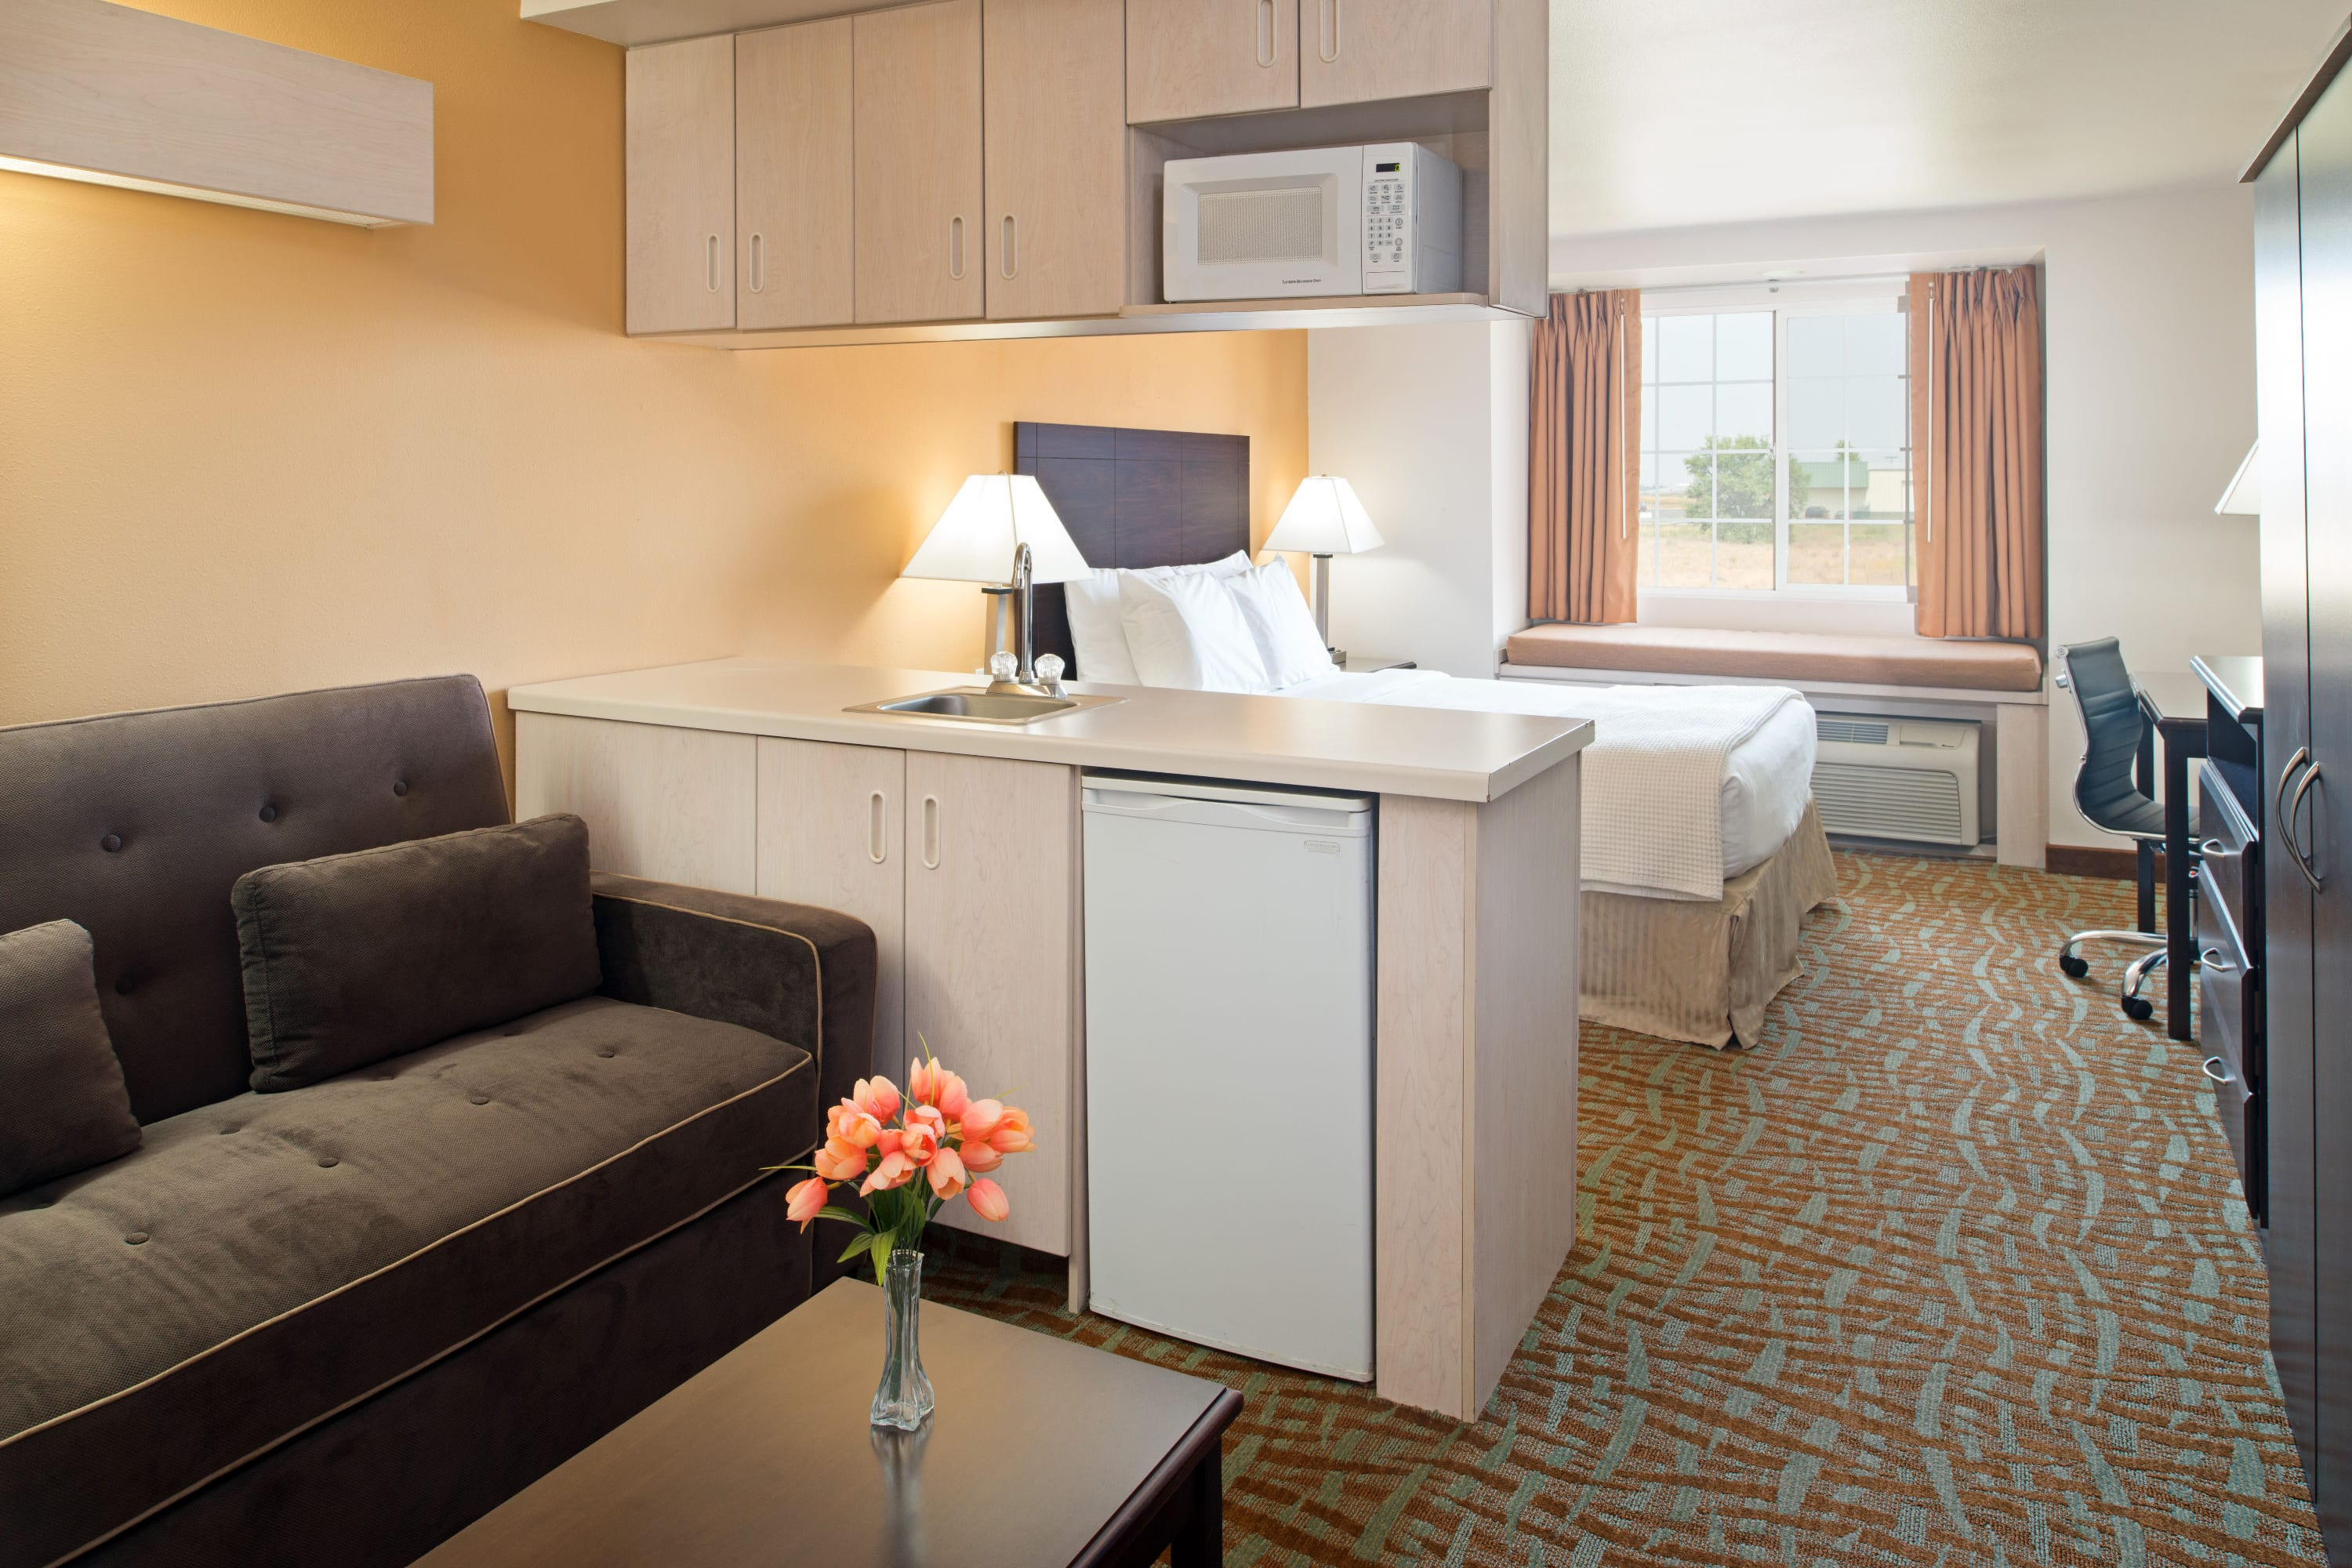 Days Inn & Suites Spokane Airport Airway Heights suite in Airway Heights, Washington